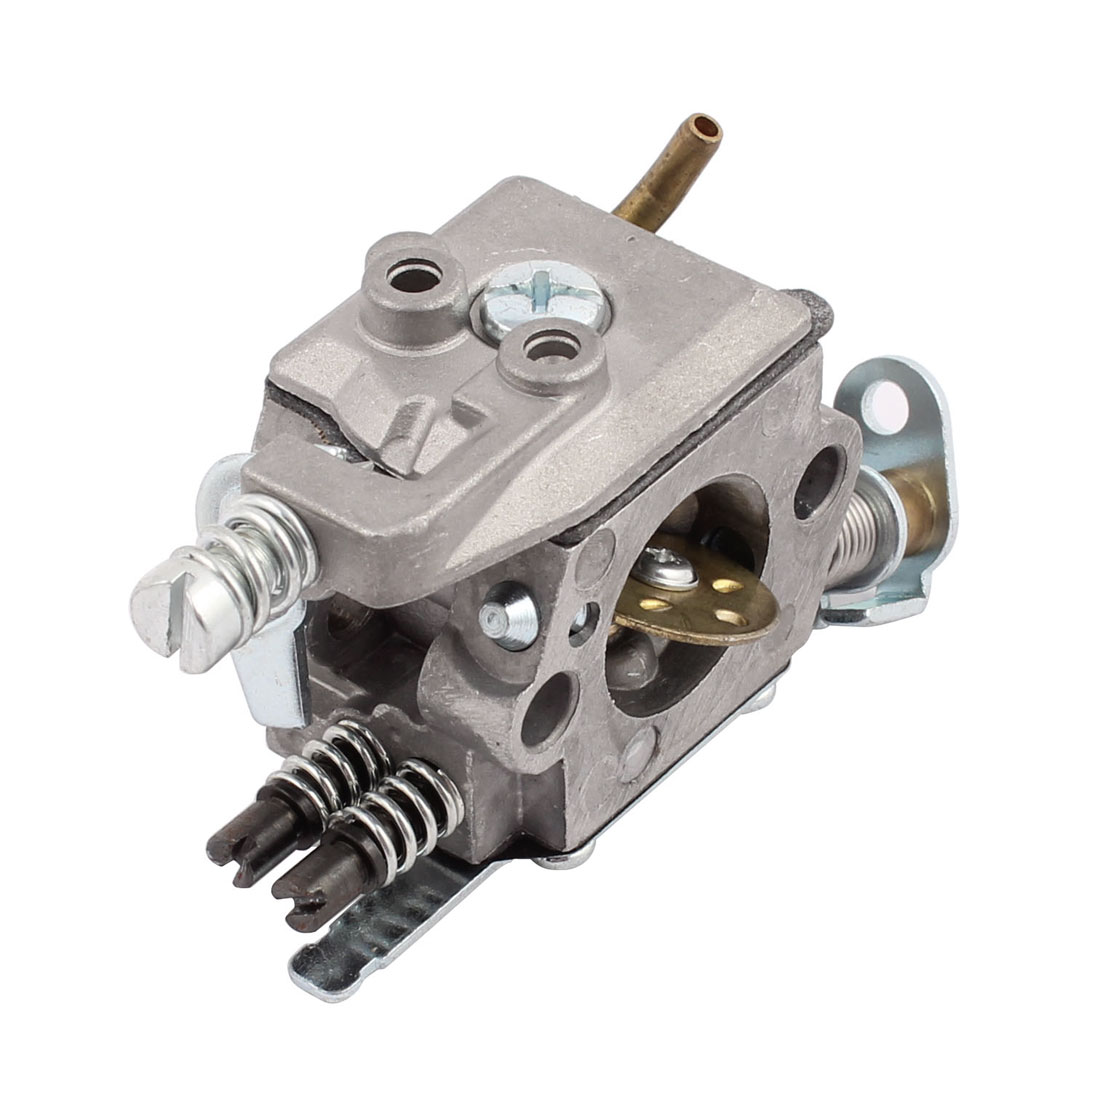 New WT-834A Carburetor for Chainsaw 136 141 137 142